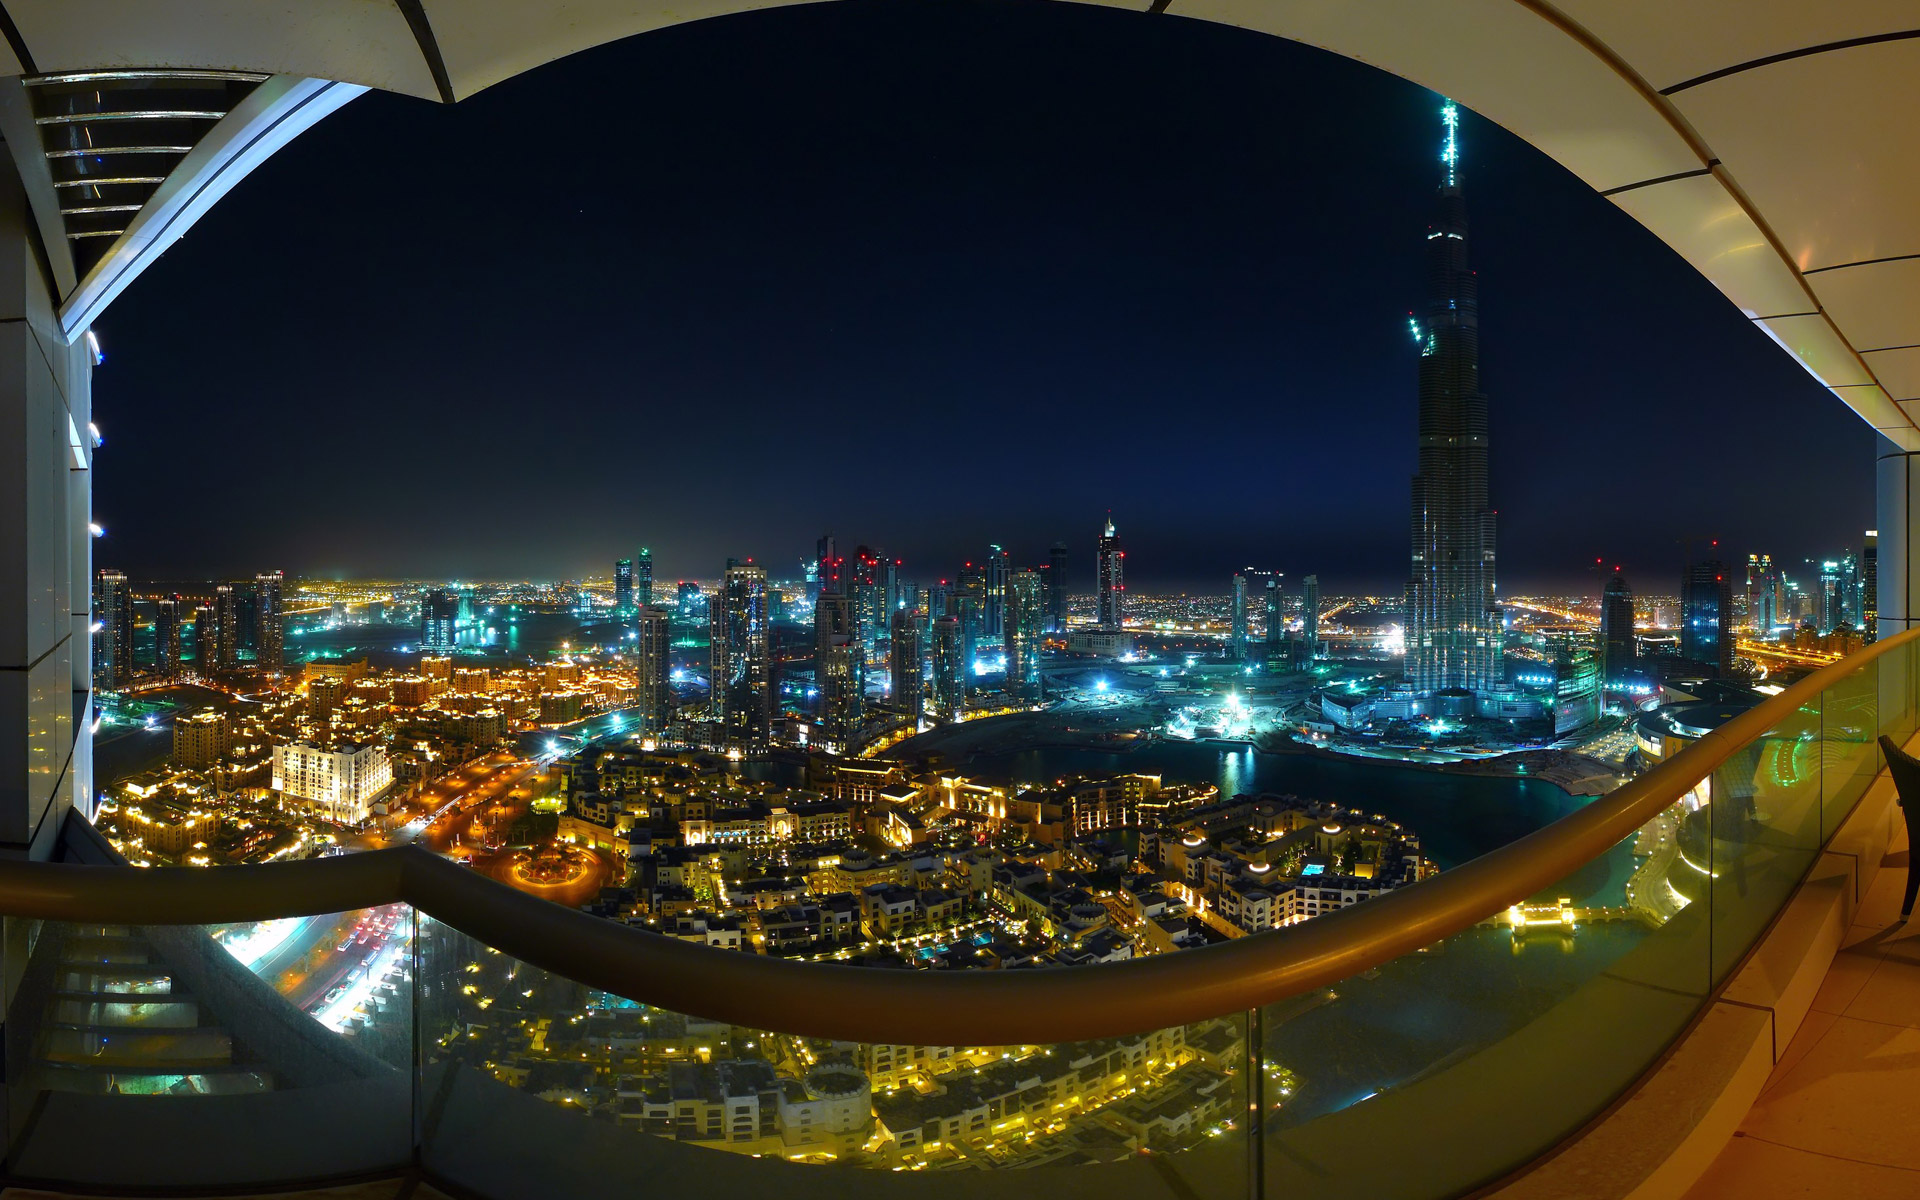 Dog view landscape 1920x1200 6817 hd wallpaper res 1920x1200 - Spectacular Dubai City View Wallpapers Hd Wallpapers